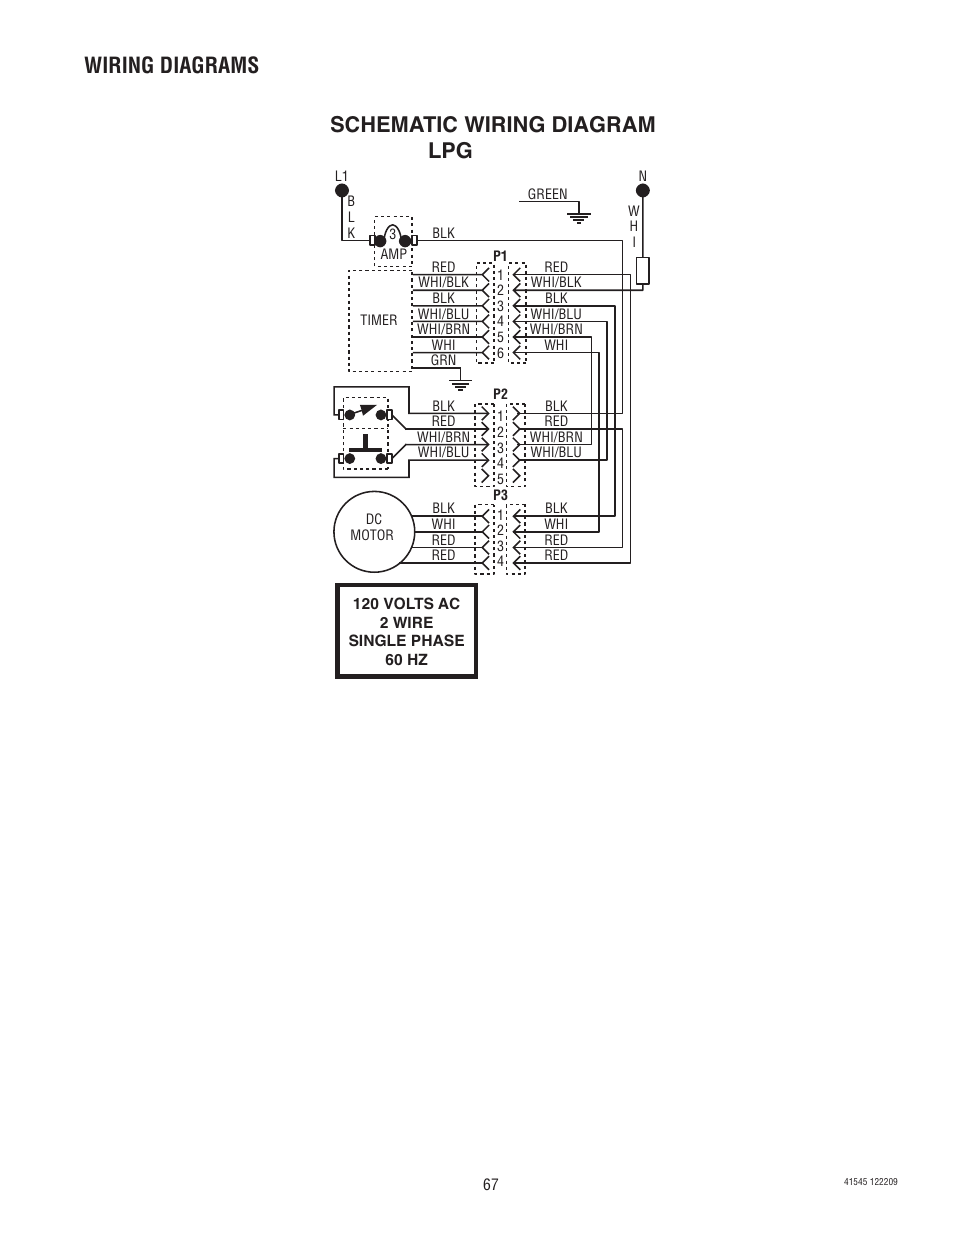 hight resolution of schematic wiring diagram lpg lpg2 wiring diagrams bunn g9 2t lpg wiring diagram lpg wiring diagram